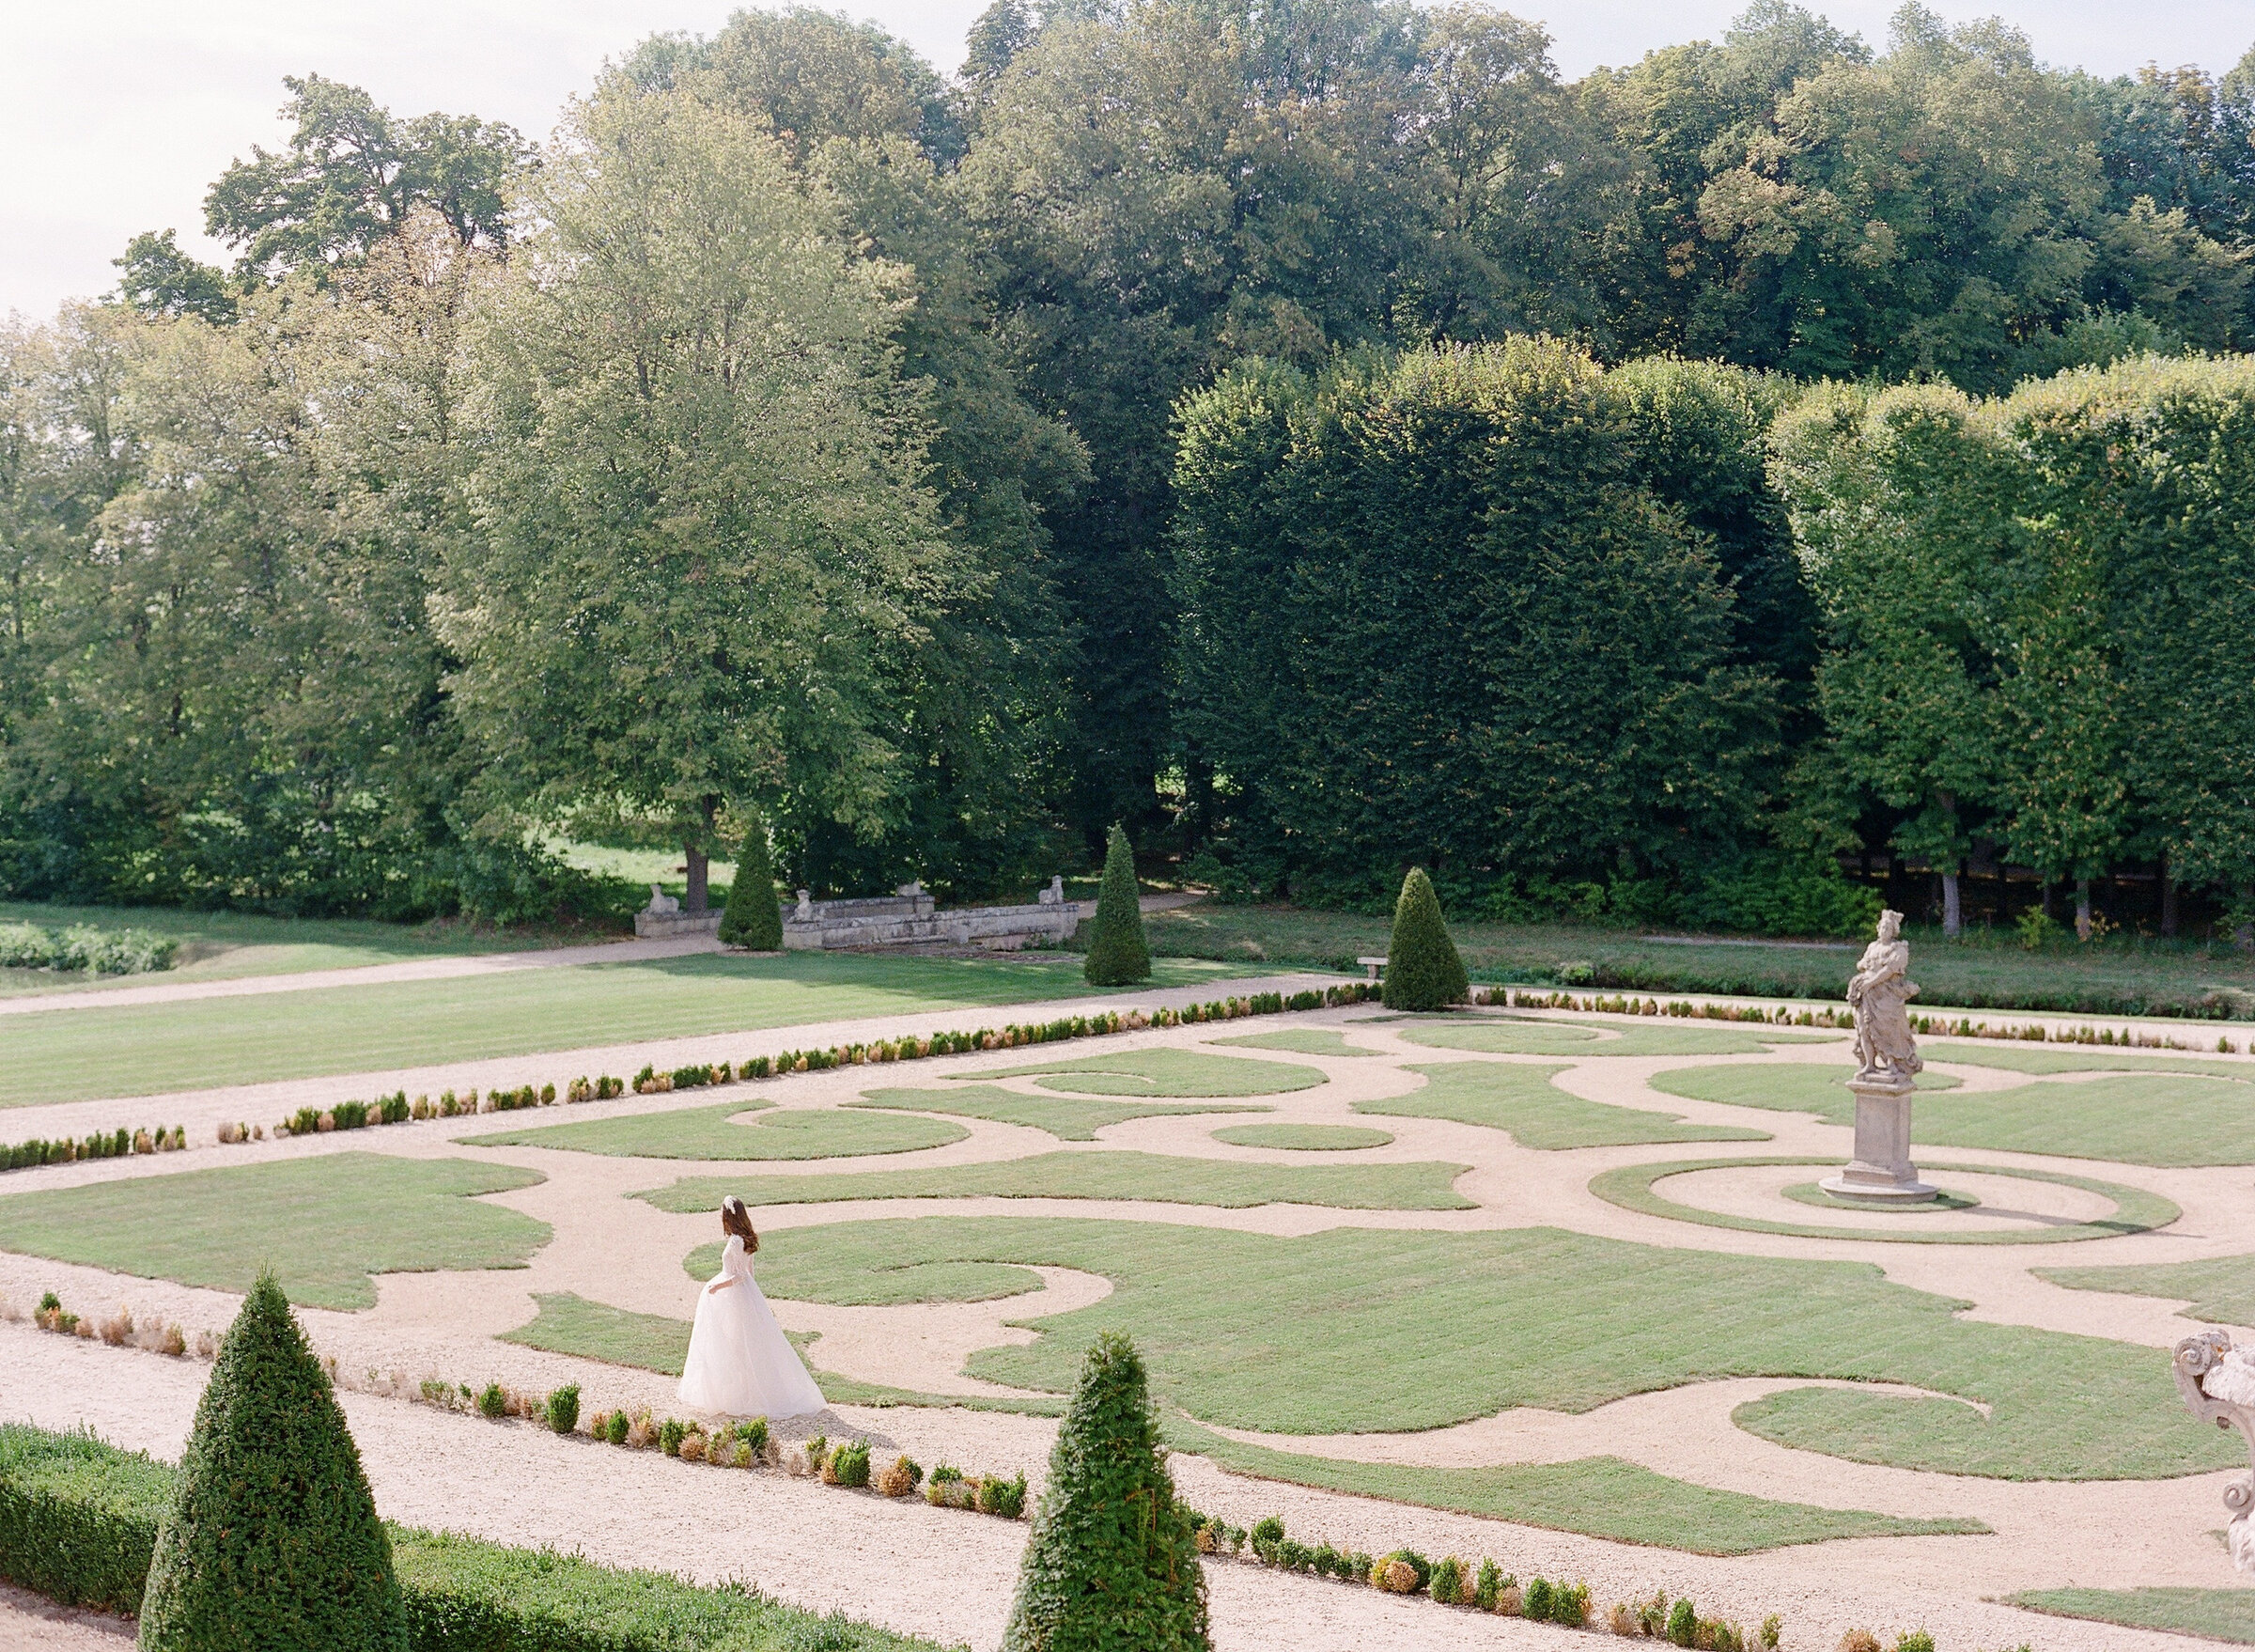 Château de Villette Gardens in France